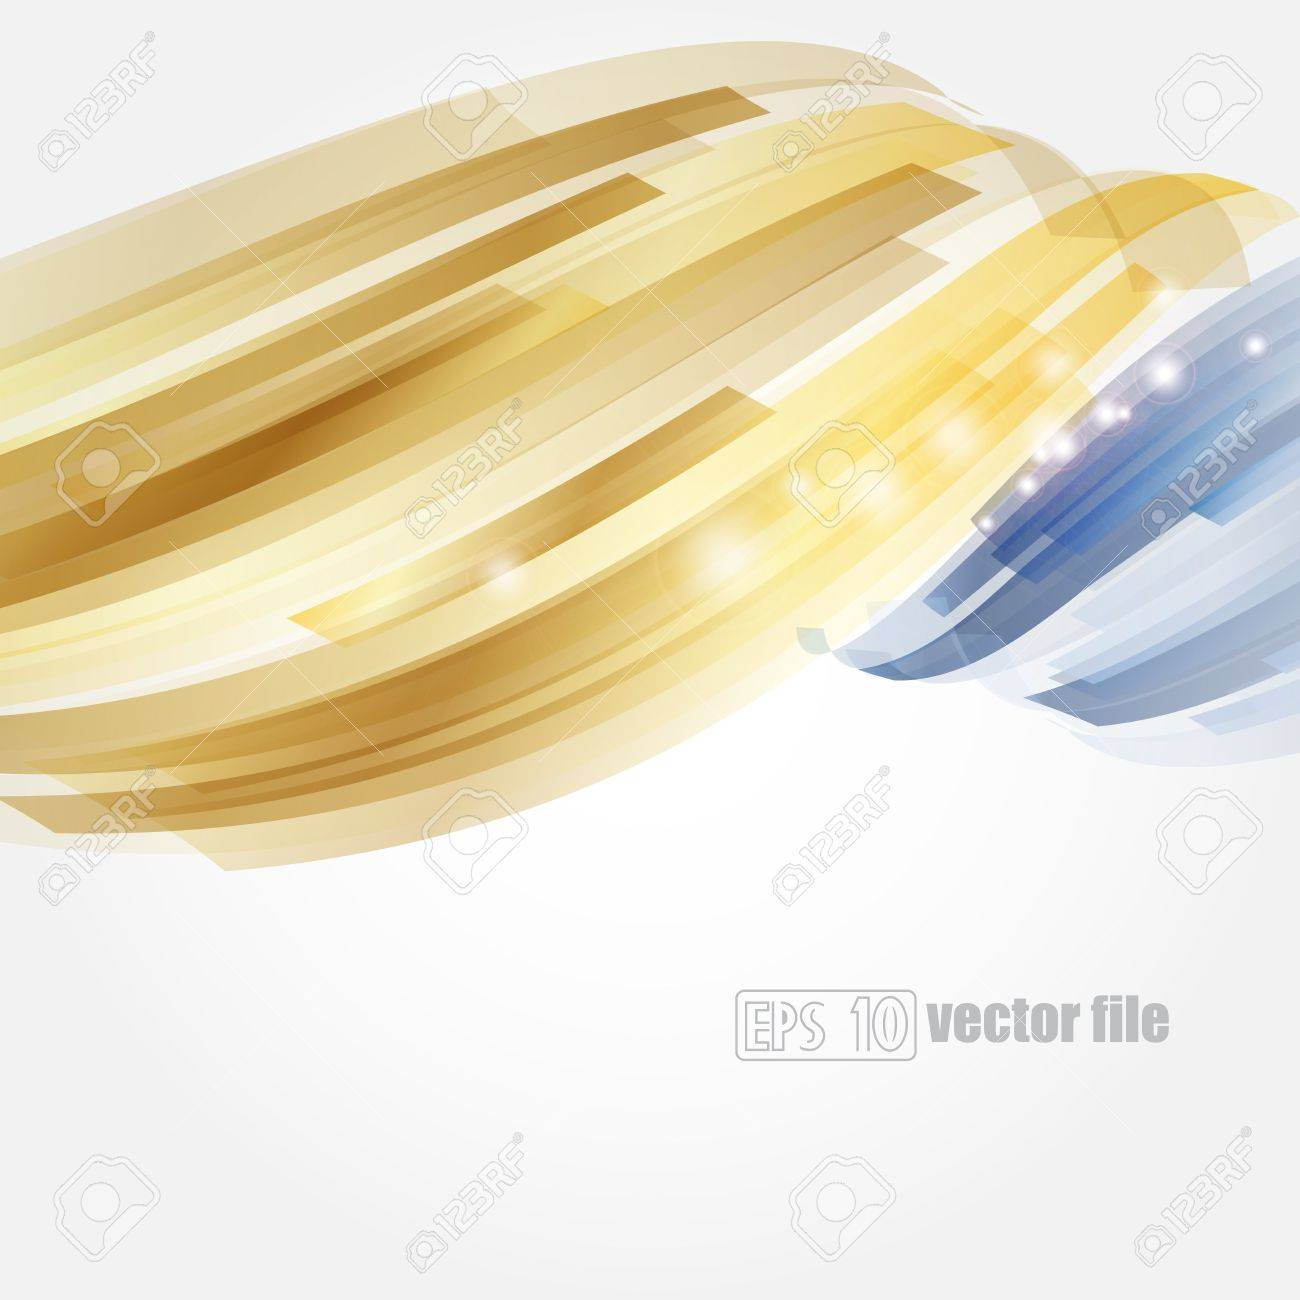 Abstract bright blue and gold background Vector Stock Vector - 17447004